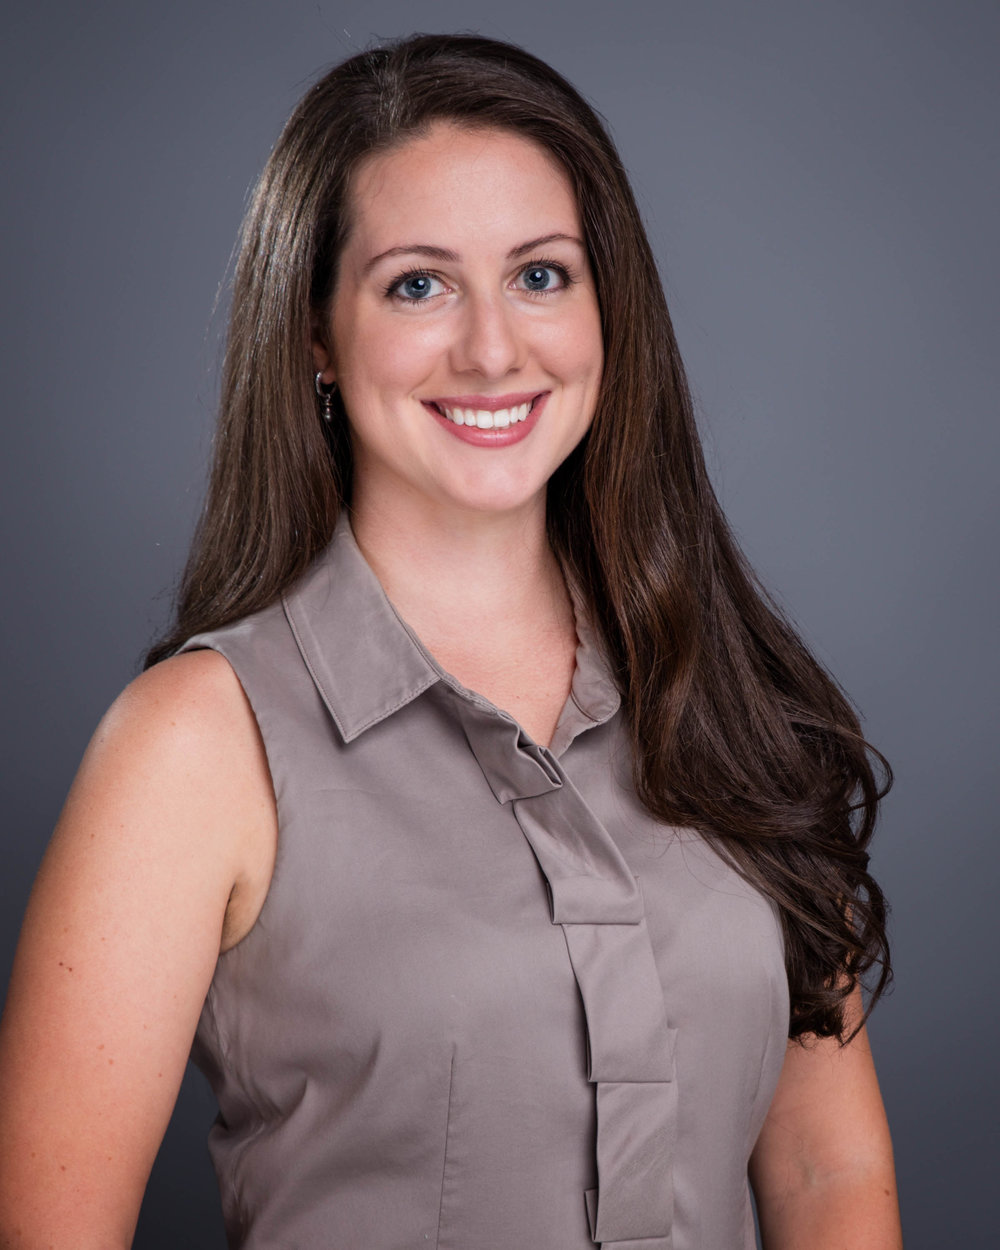 Dr. Lauren O'Hagan, East Delray Dentist